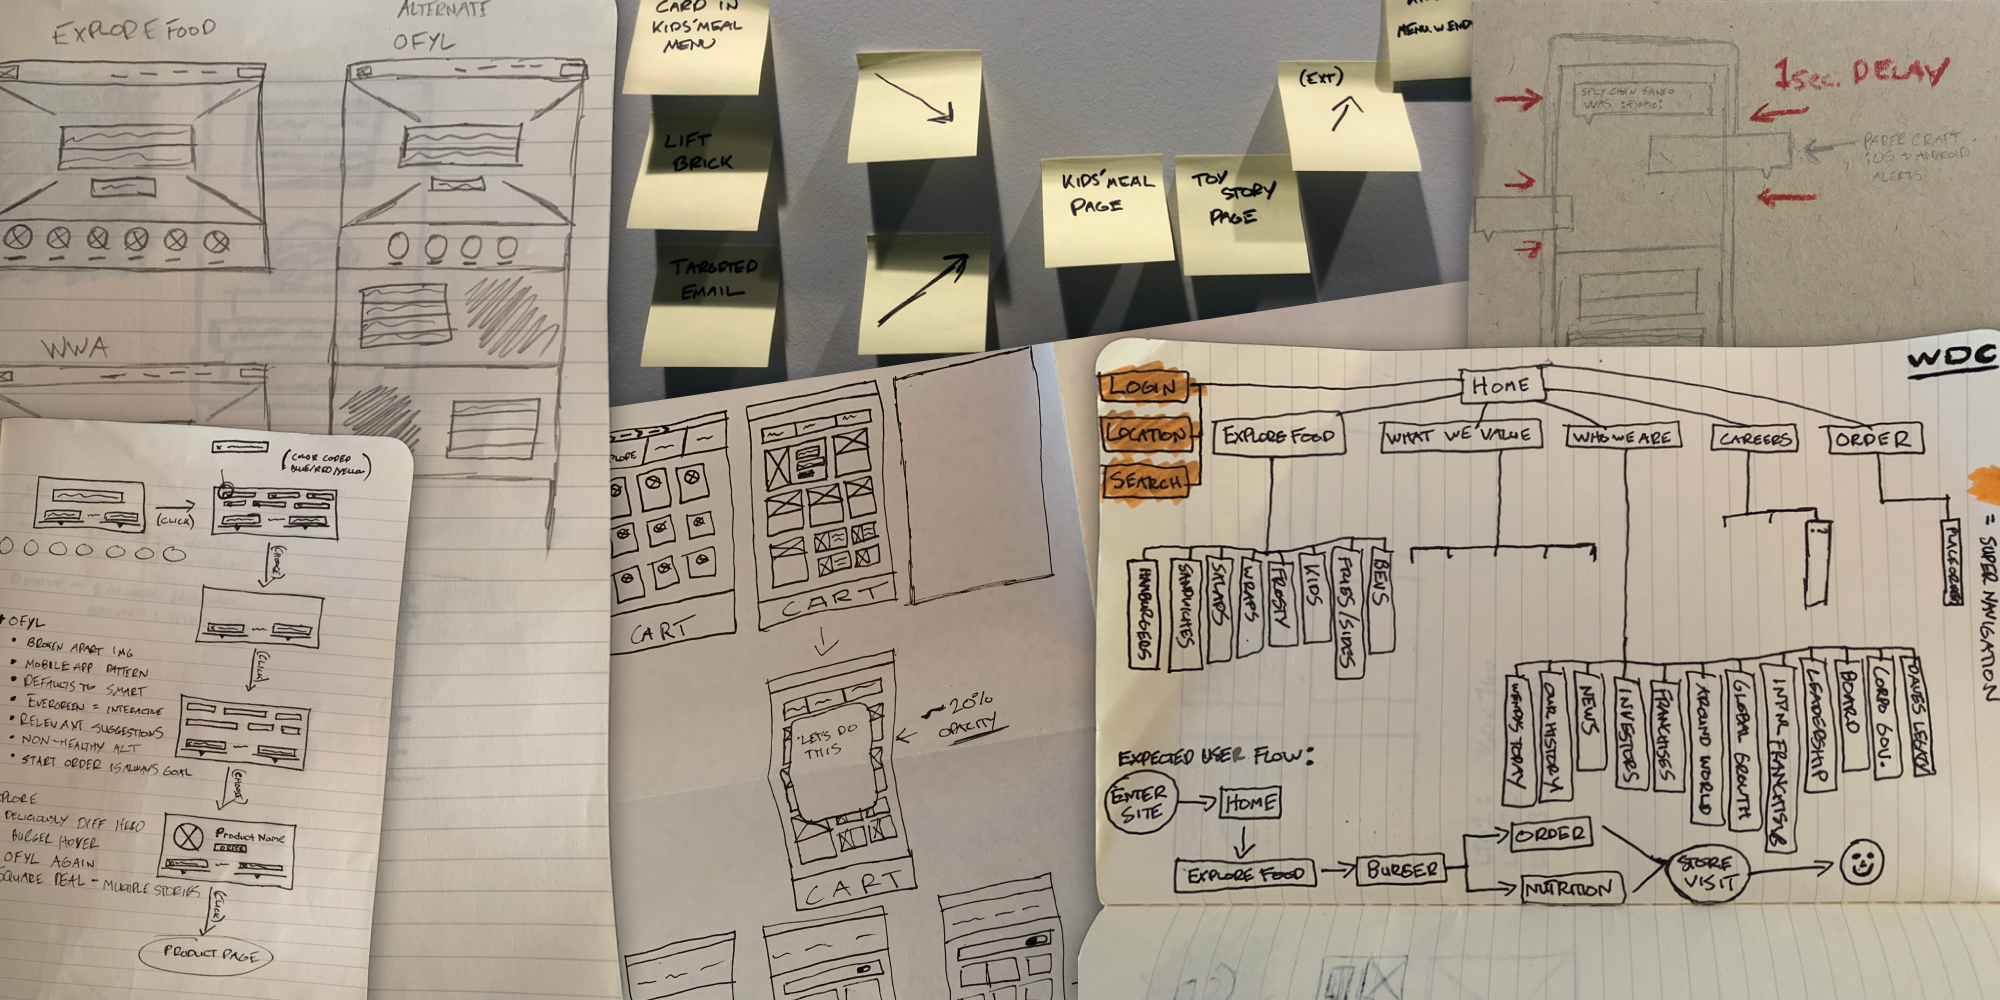 Process artifacts including sketches and sticky notes